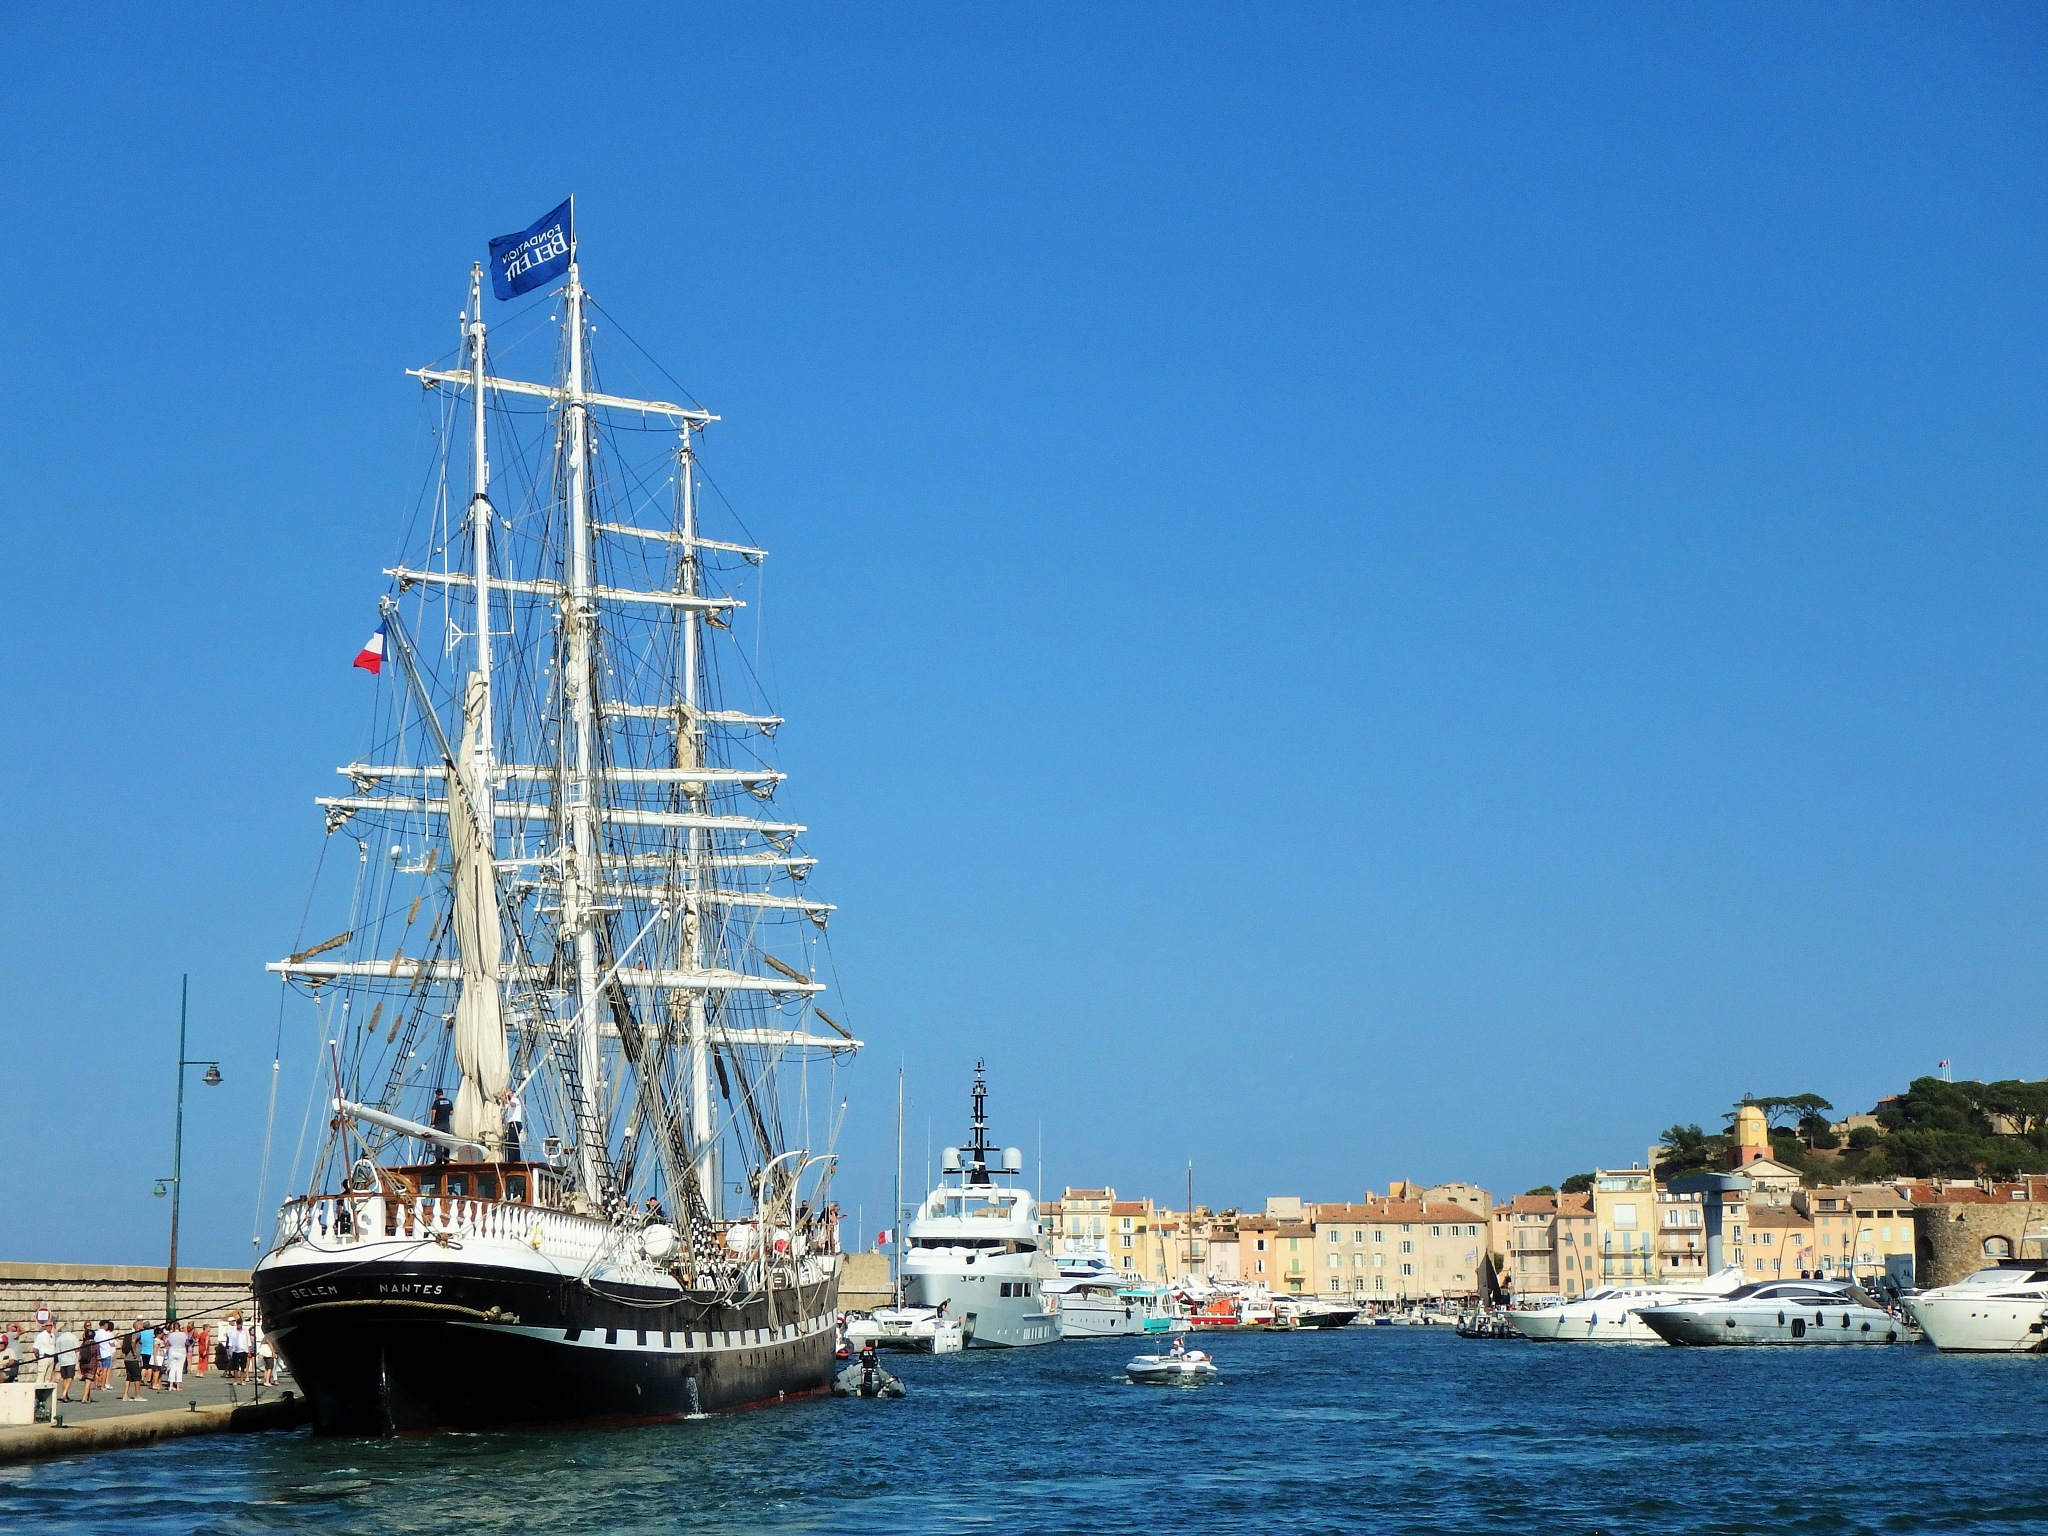 The Belem in the Port of St Tropez by alison16